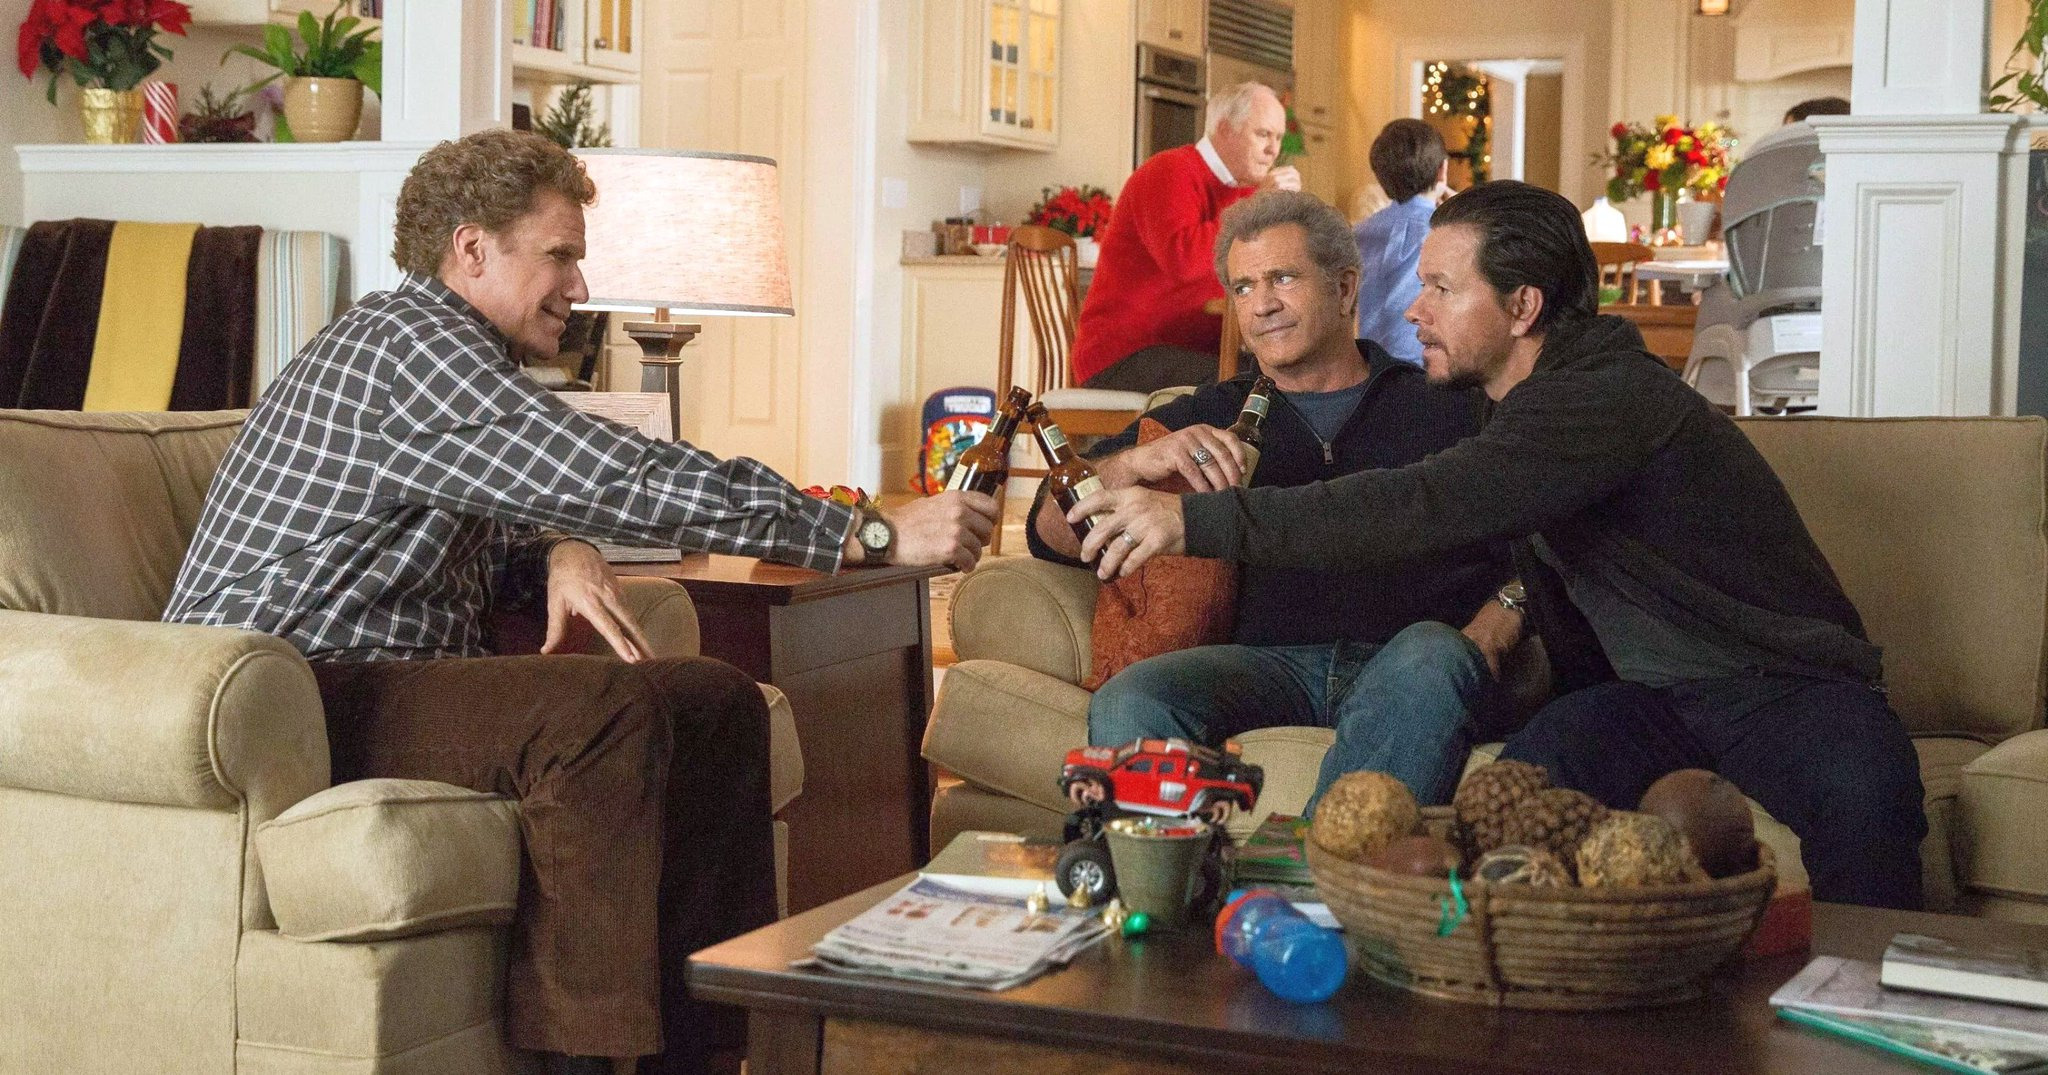 Will Ferrell & Mark Wahlberg Return In Daddy's Home 2 Trailer